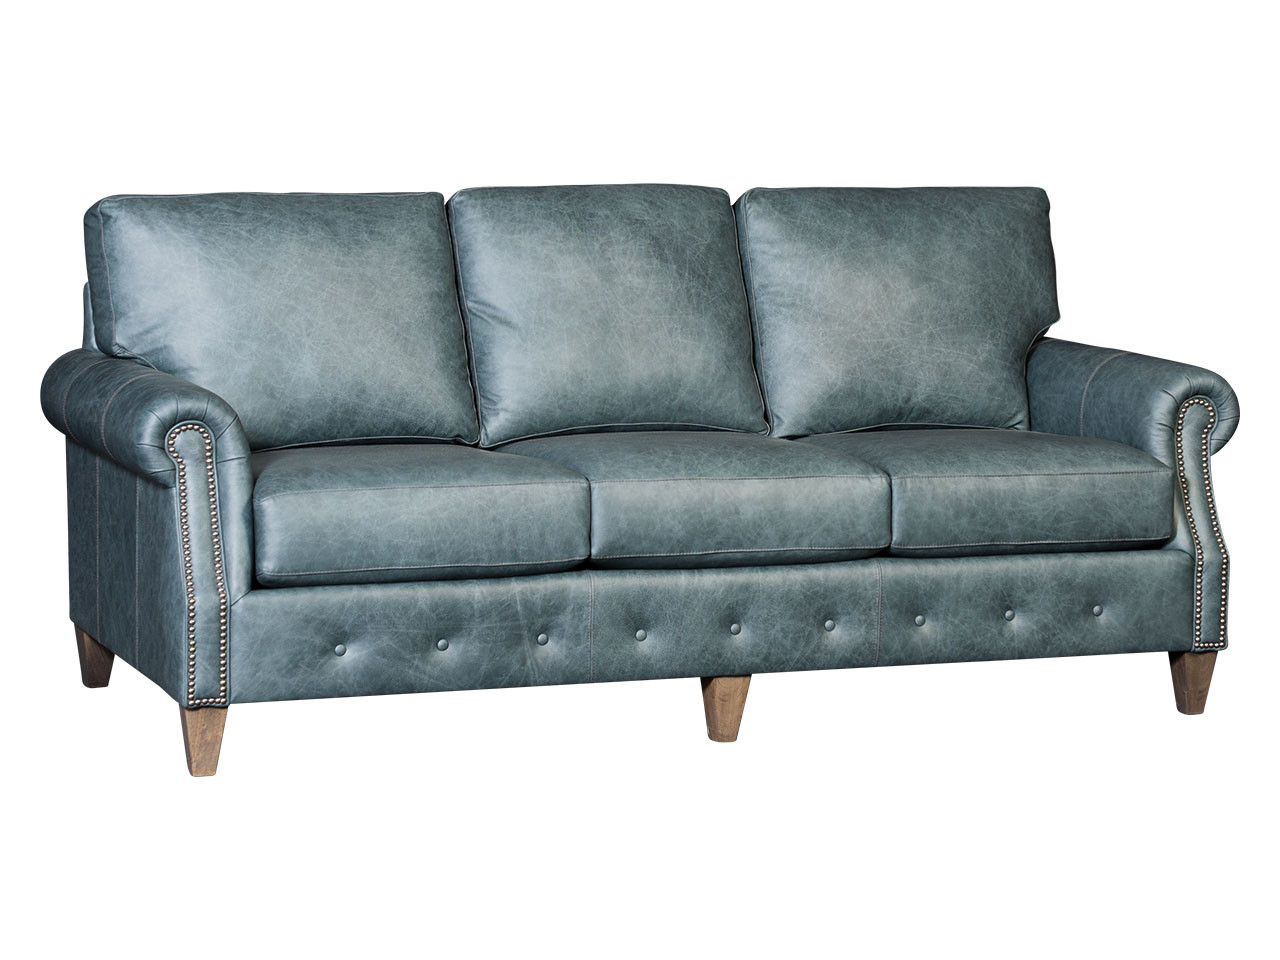 tufted leather sofa cheap furniture protectors for sectional sofas base by mayo traditional in